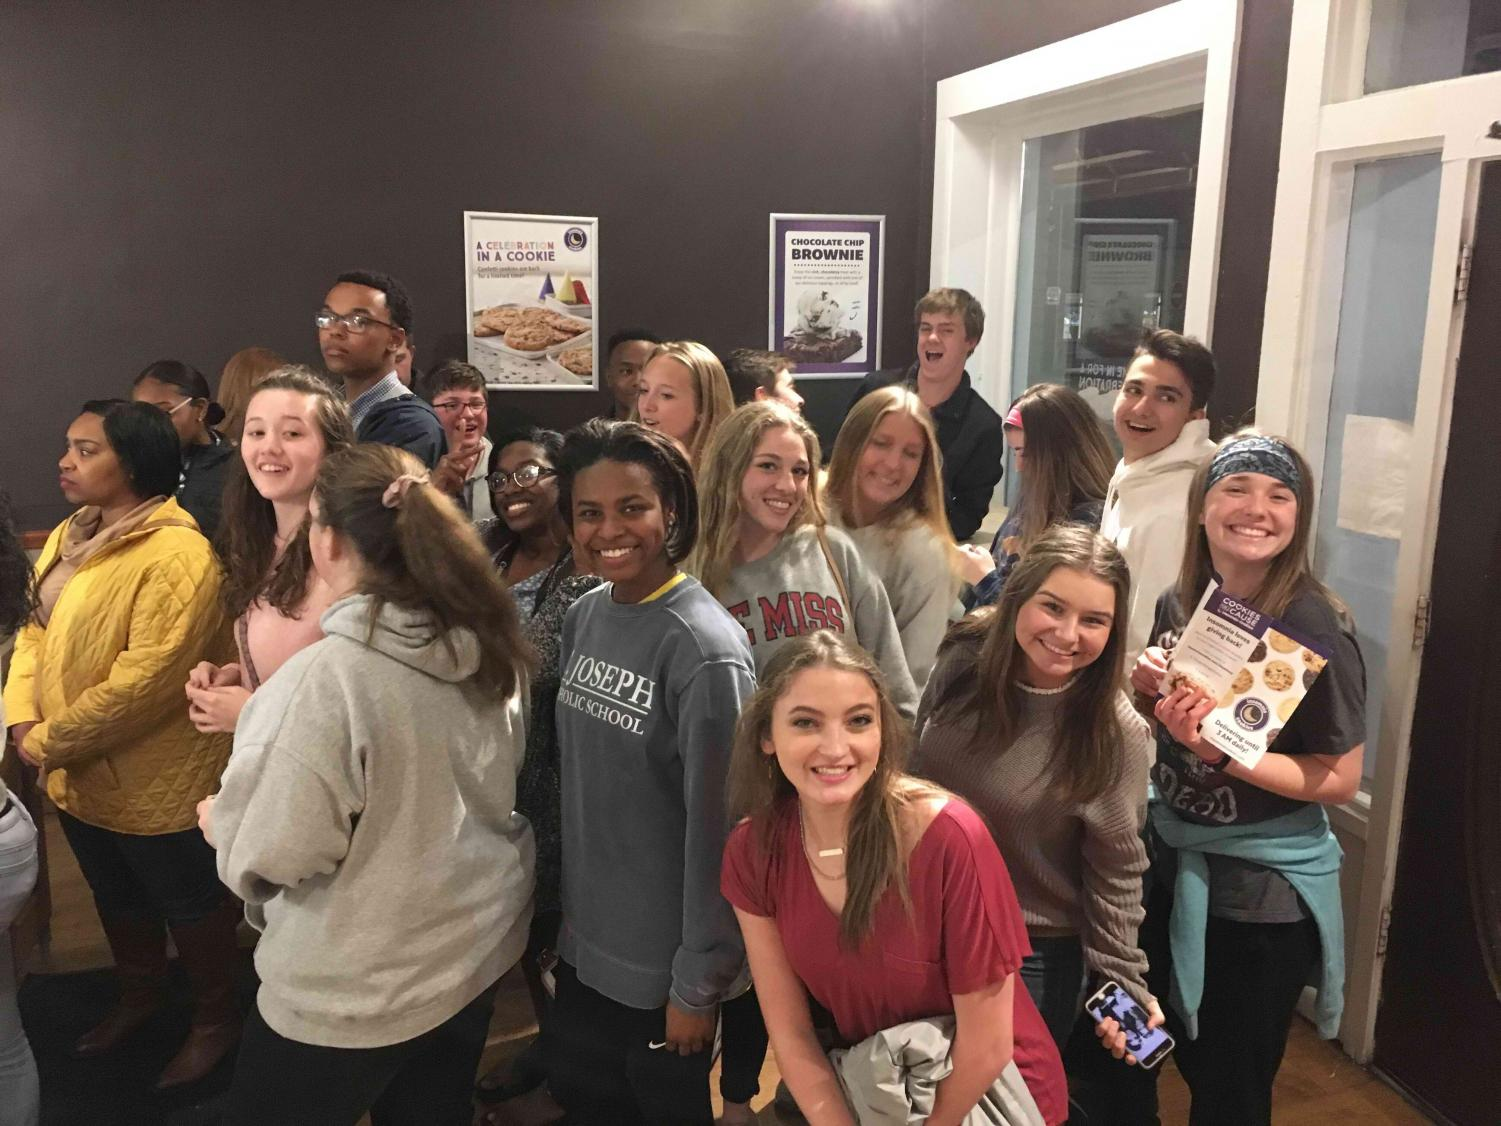 St. Joseph Catholic School journalism students stop by Insomnia cookie store on the Square in Oxford on Sunday, March 31, 2019, after eating dinner at Gus' Famous Fried Chicken.